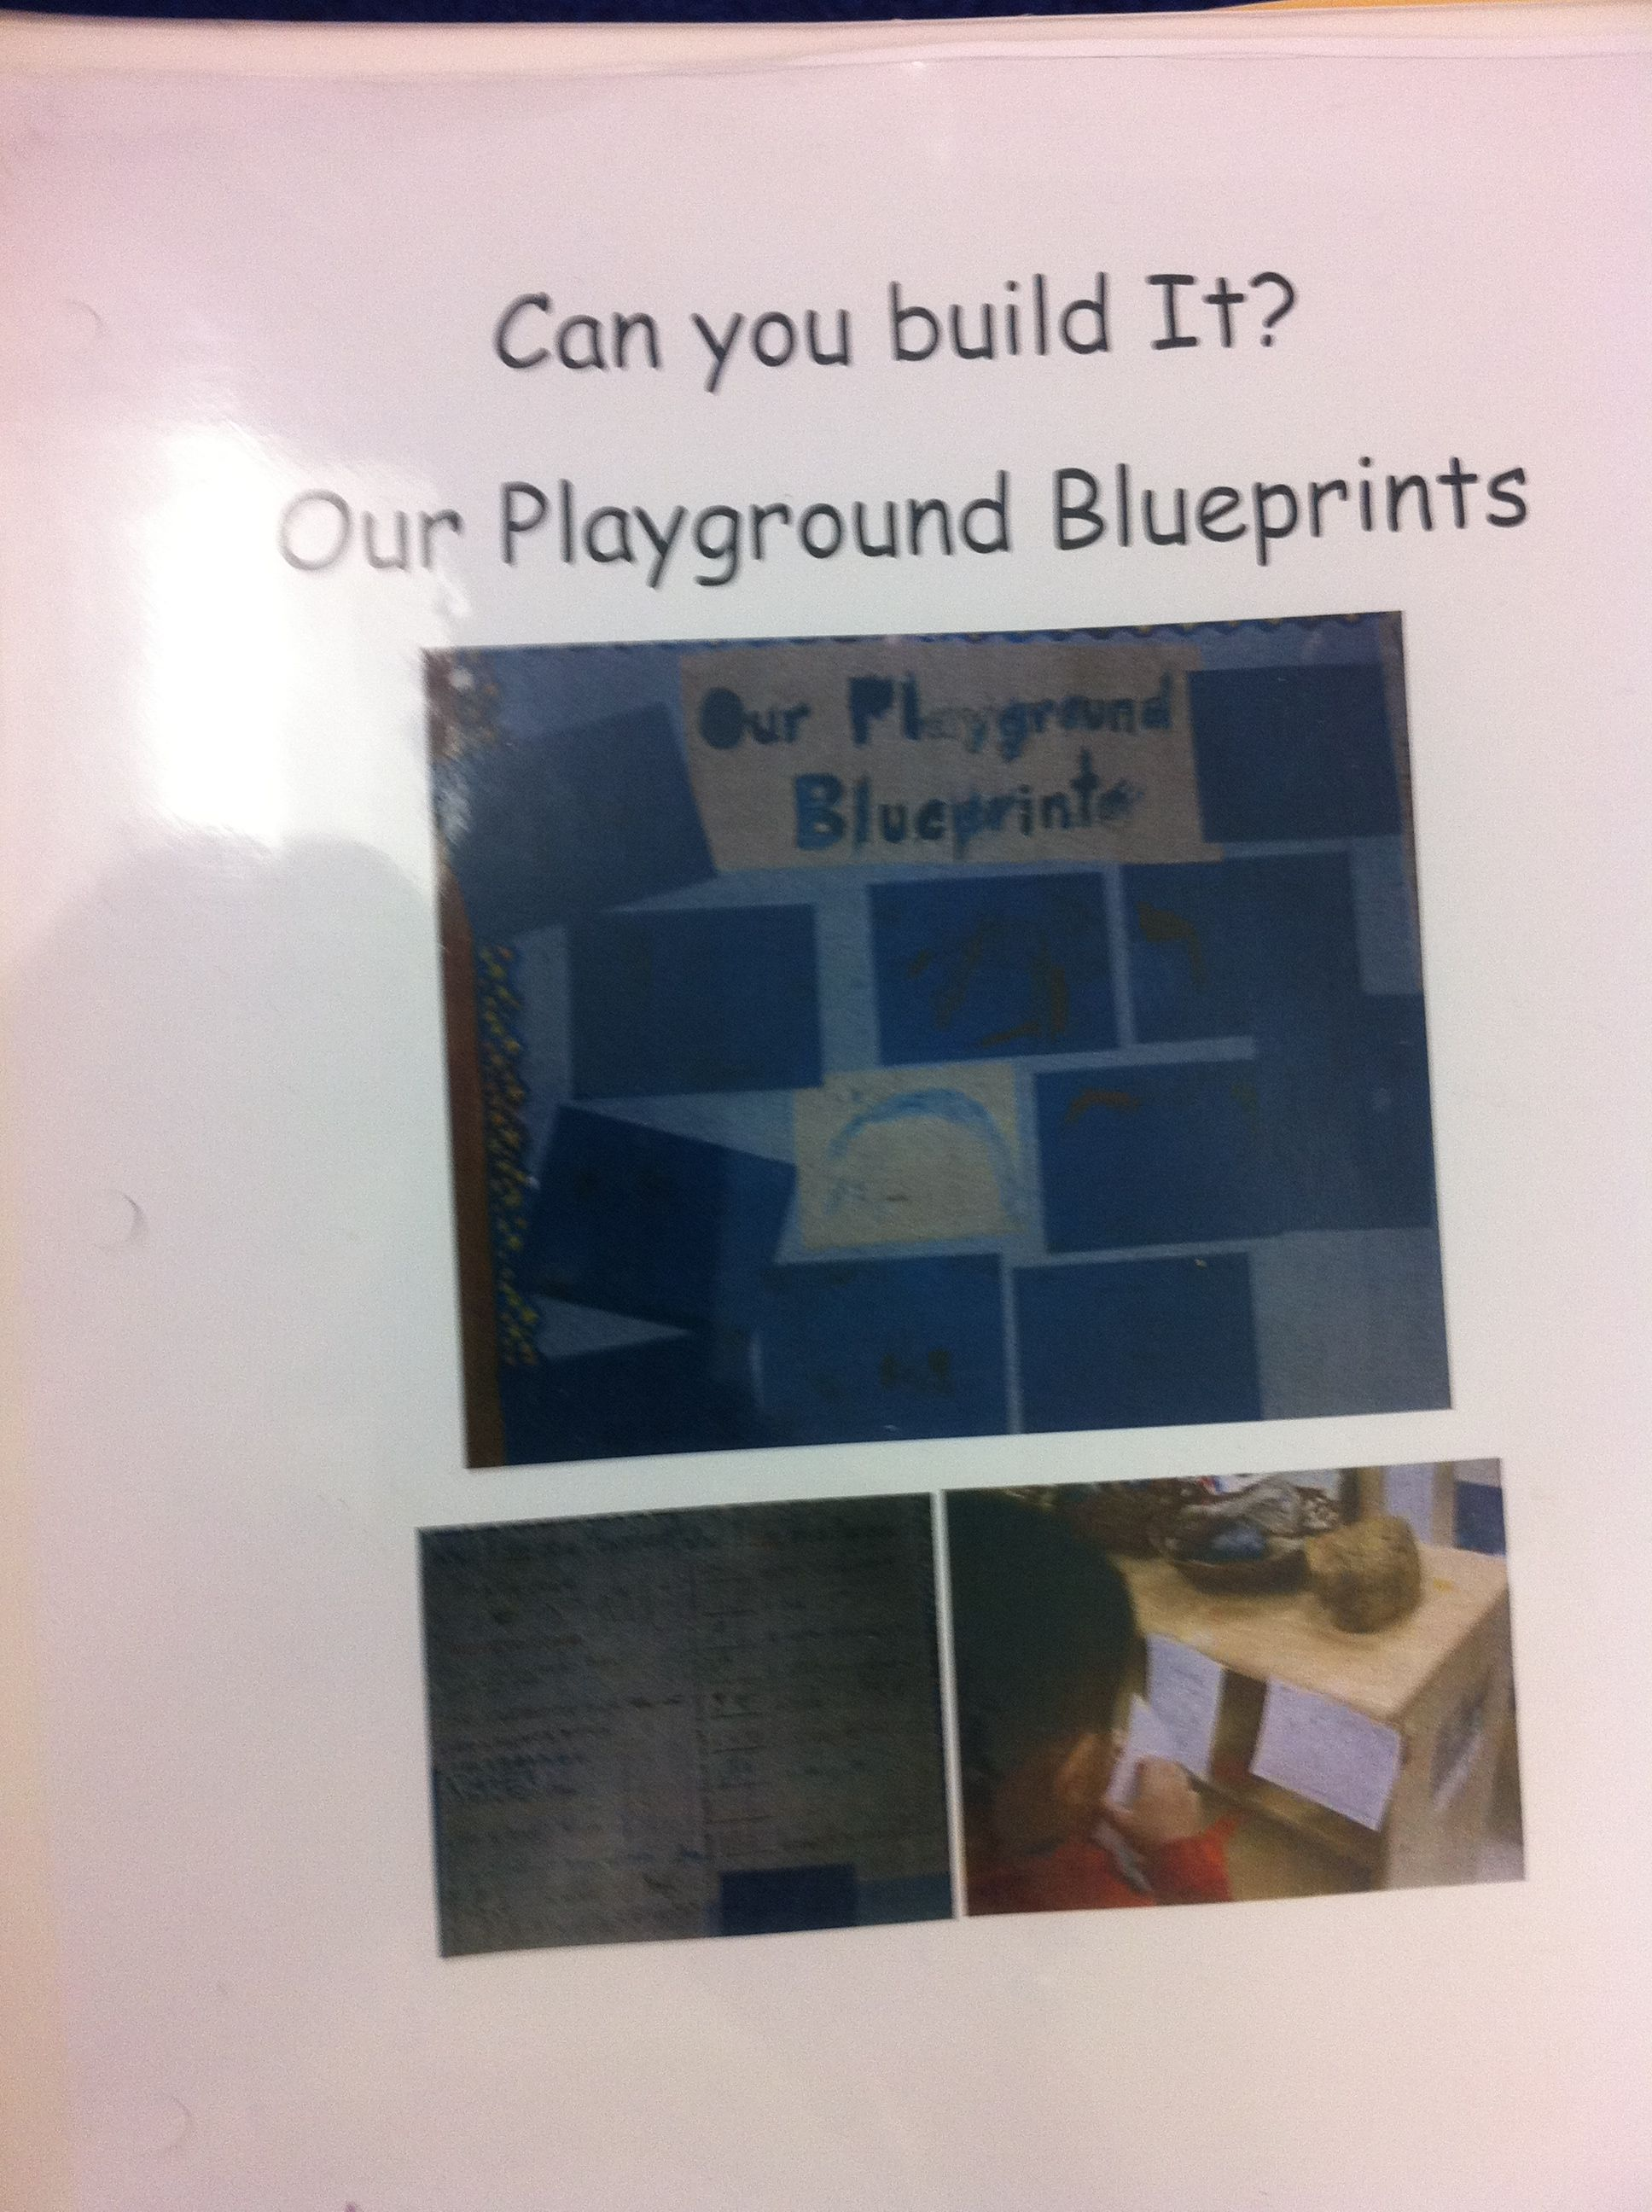 Can you build it playground blueprint book cover from shena petties playground blueprint book cover from shena petties malvernweather Image collections